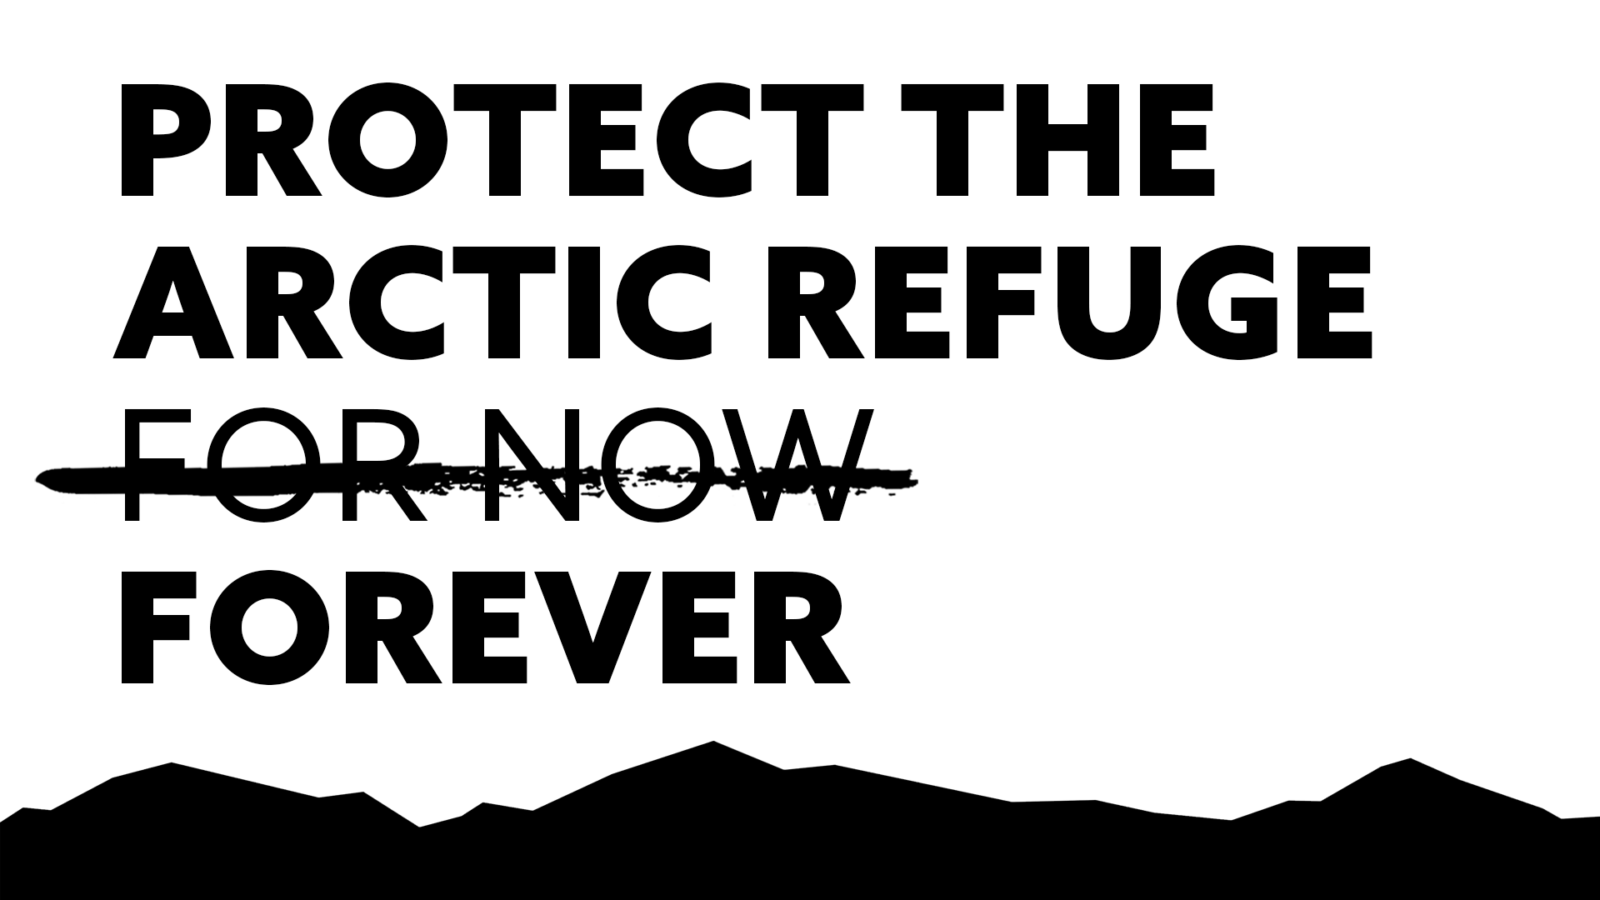 Protecting the Arctic Refuge for now is not enough. Join the digital day of action to protect sacred lands in the Arctic Refuge forever.